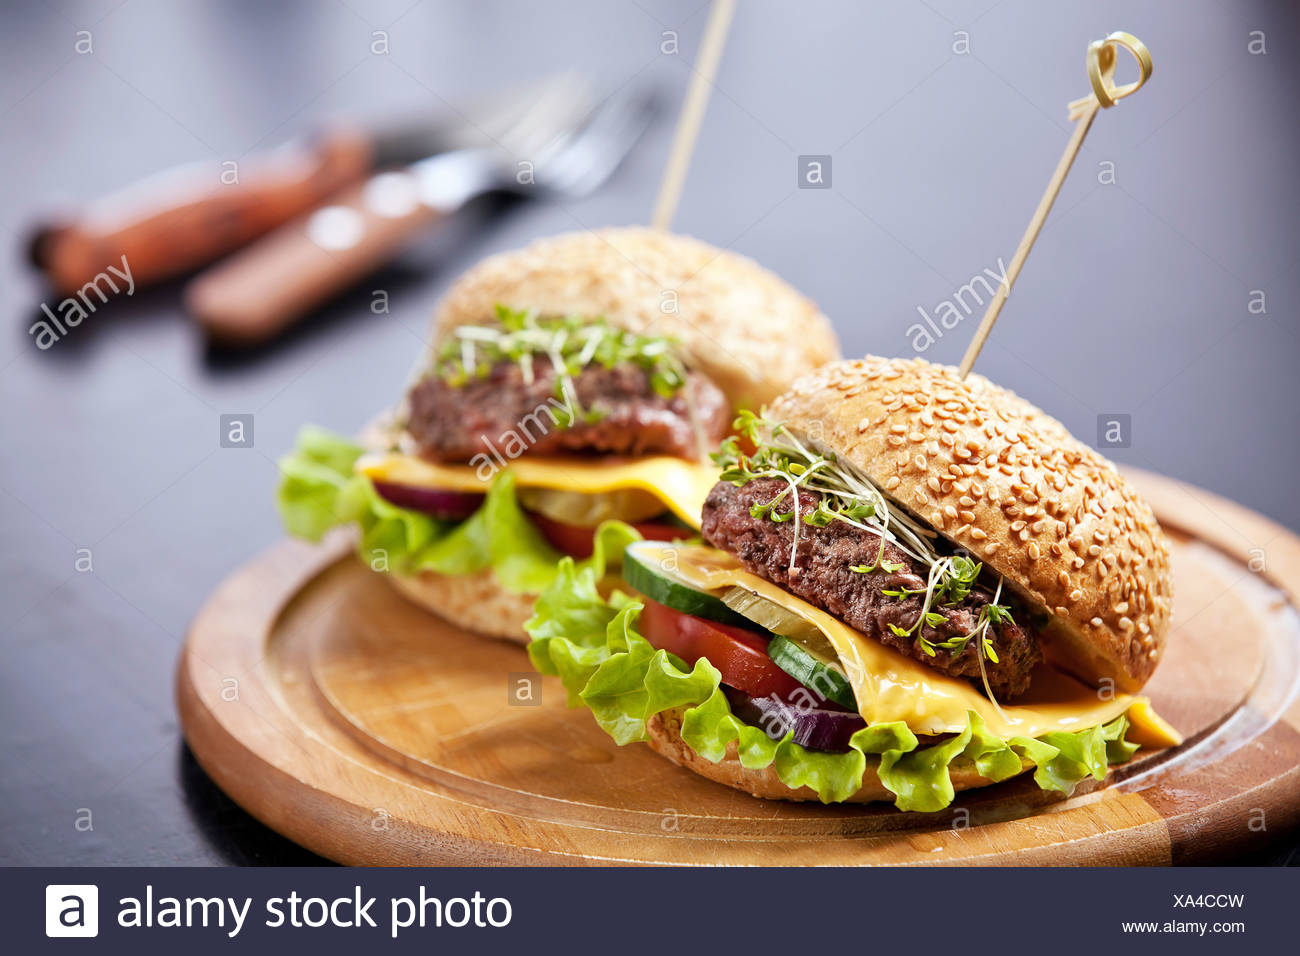 Two burgers with meat and greens - Stock Image